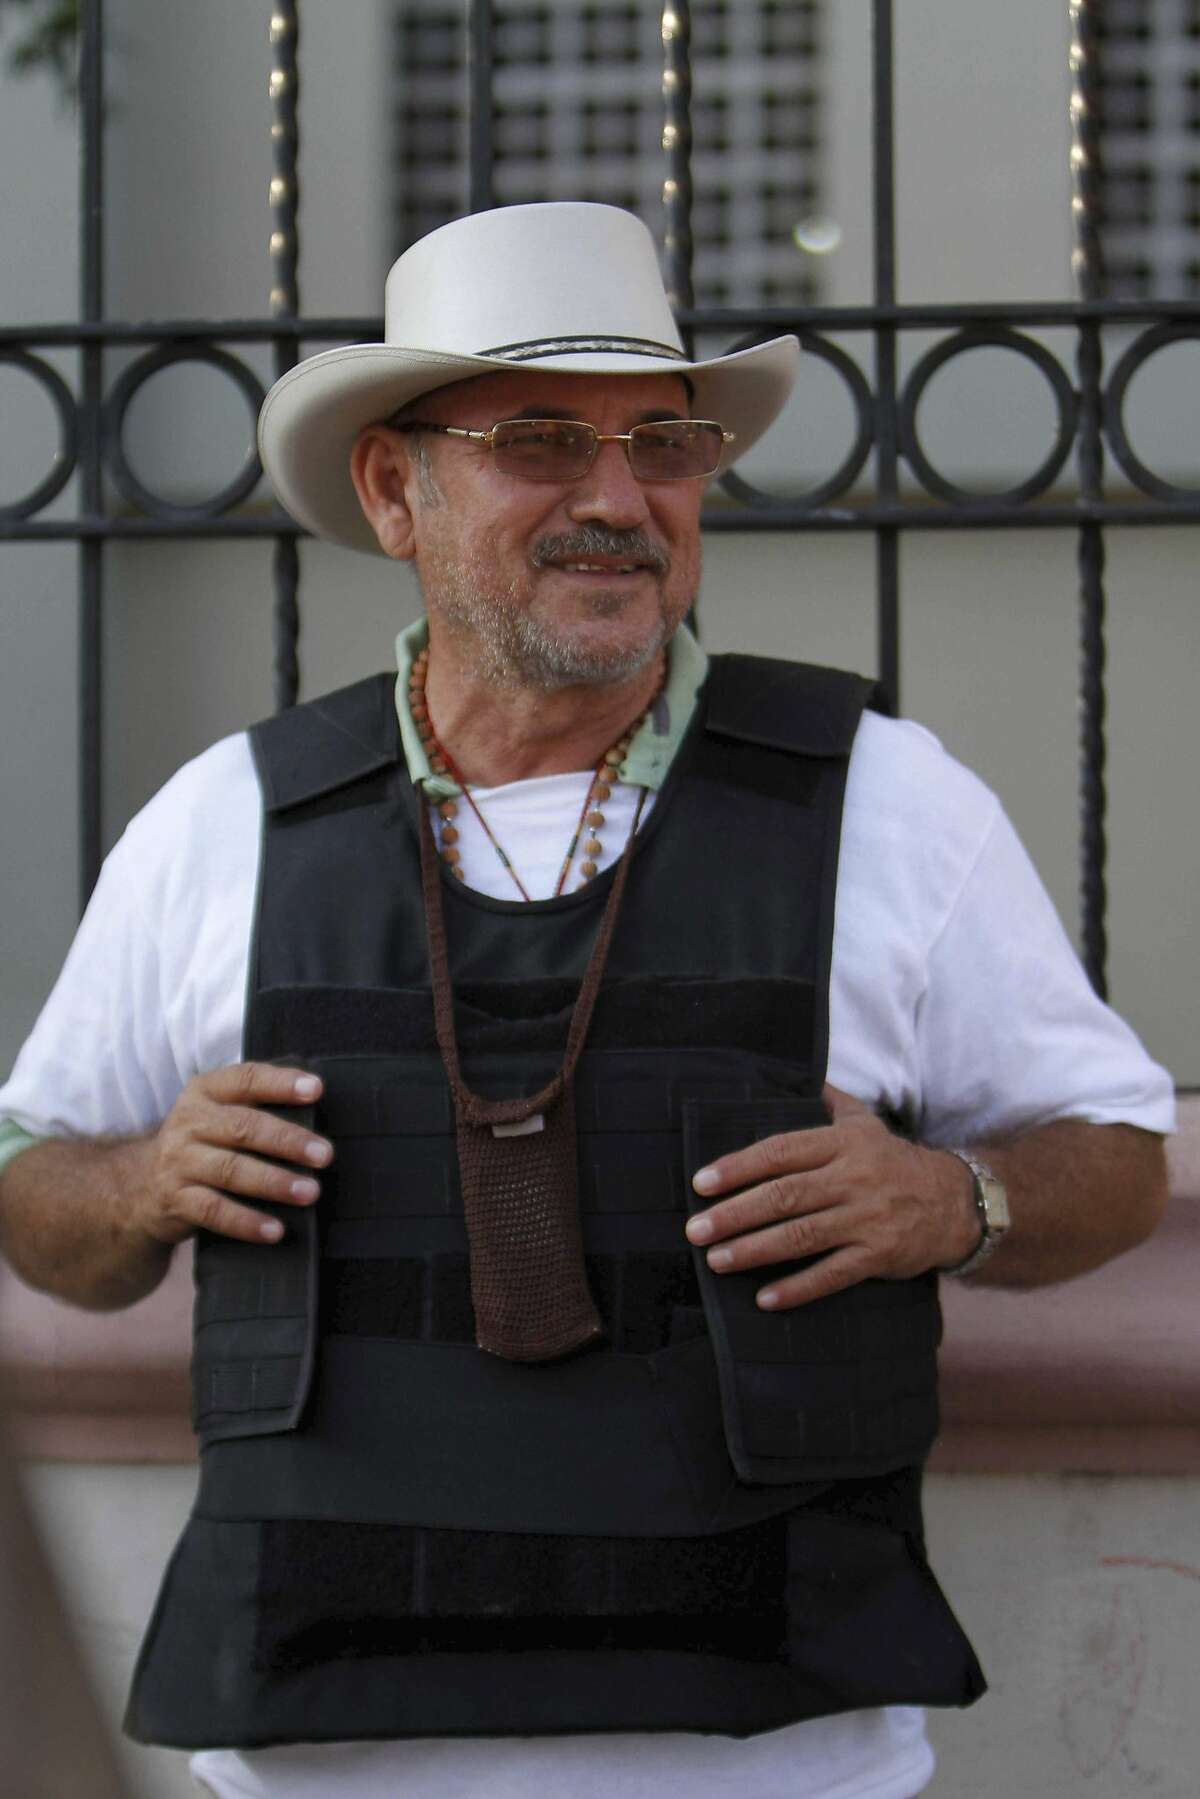 FILE - In this Feb. 9, 2014 file photo, Hipolito Mora, leader of a self-defense movement, wears a bullet proof vest as he stands at the entrance of Apatzingan, in the Michoacan state of Mexico. Self-defense groups in western Mexico are beginning to see internal divisions, amid mutual accusations between Mora and another emerging leader, Luis Antonio Torres, better known as